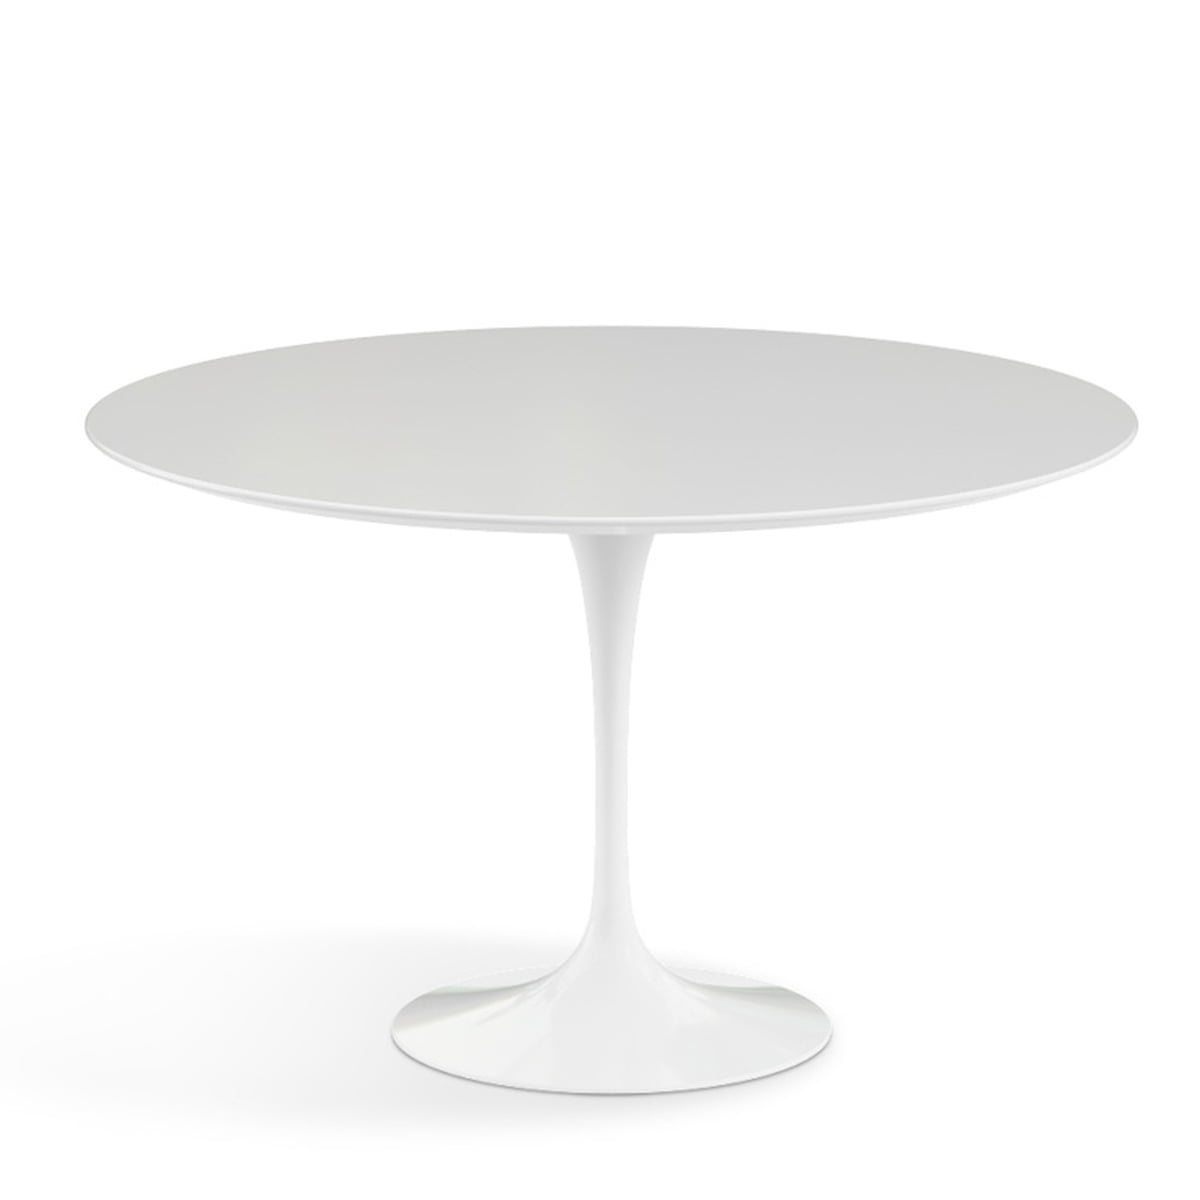 Knoll saarinen tulip dining table round